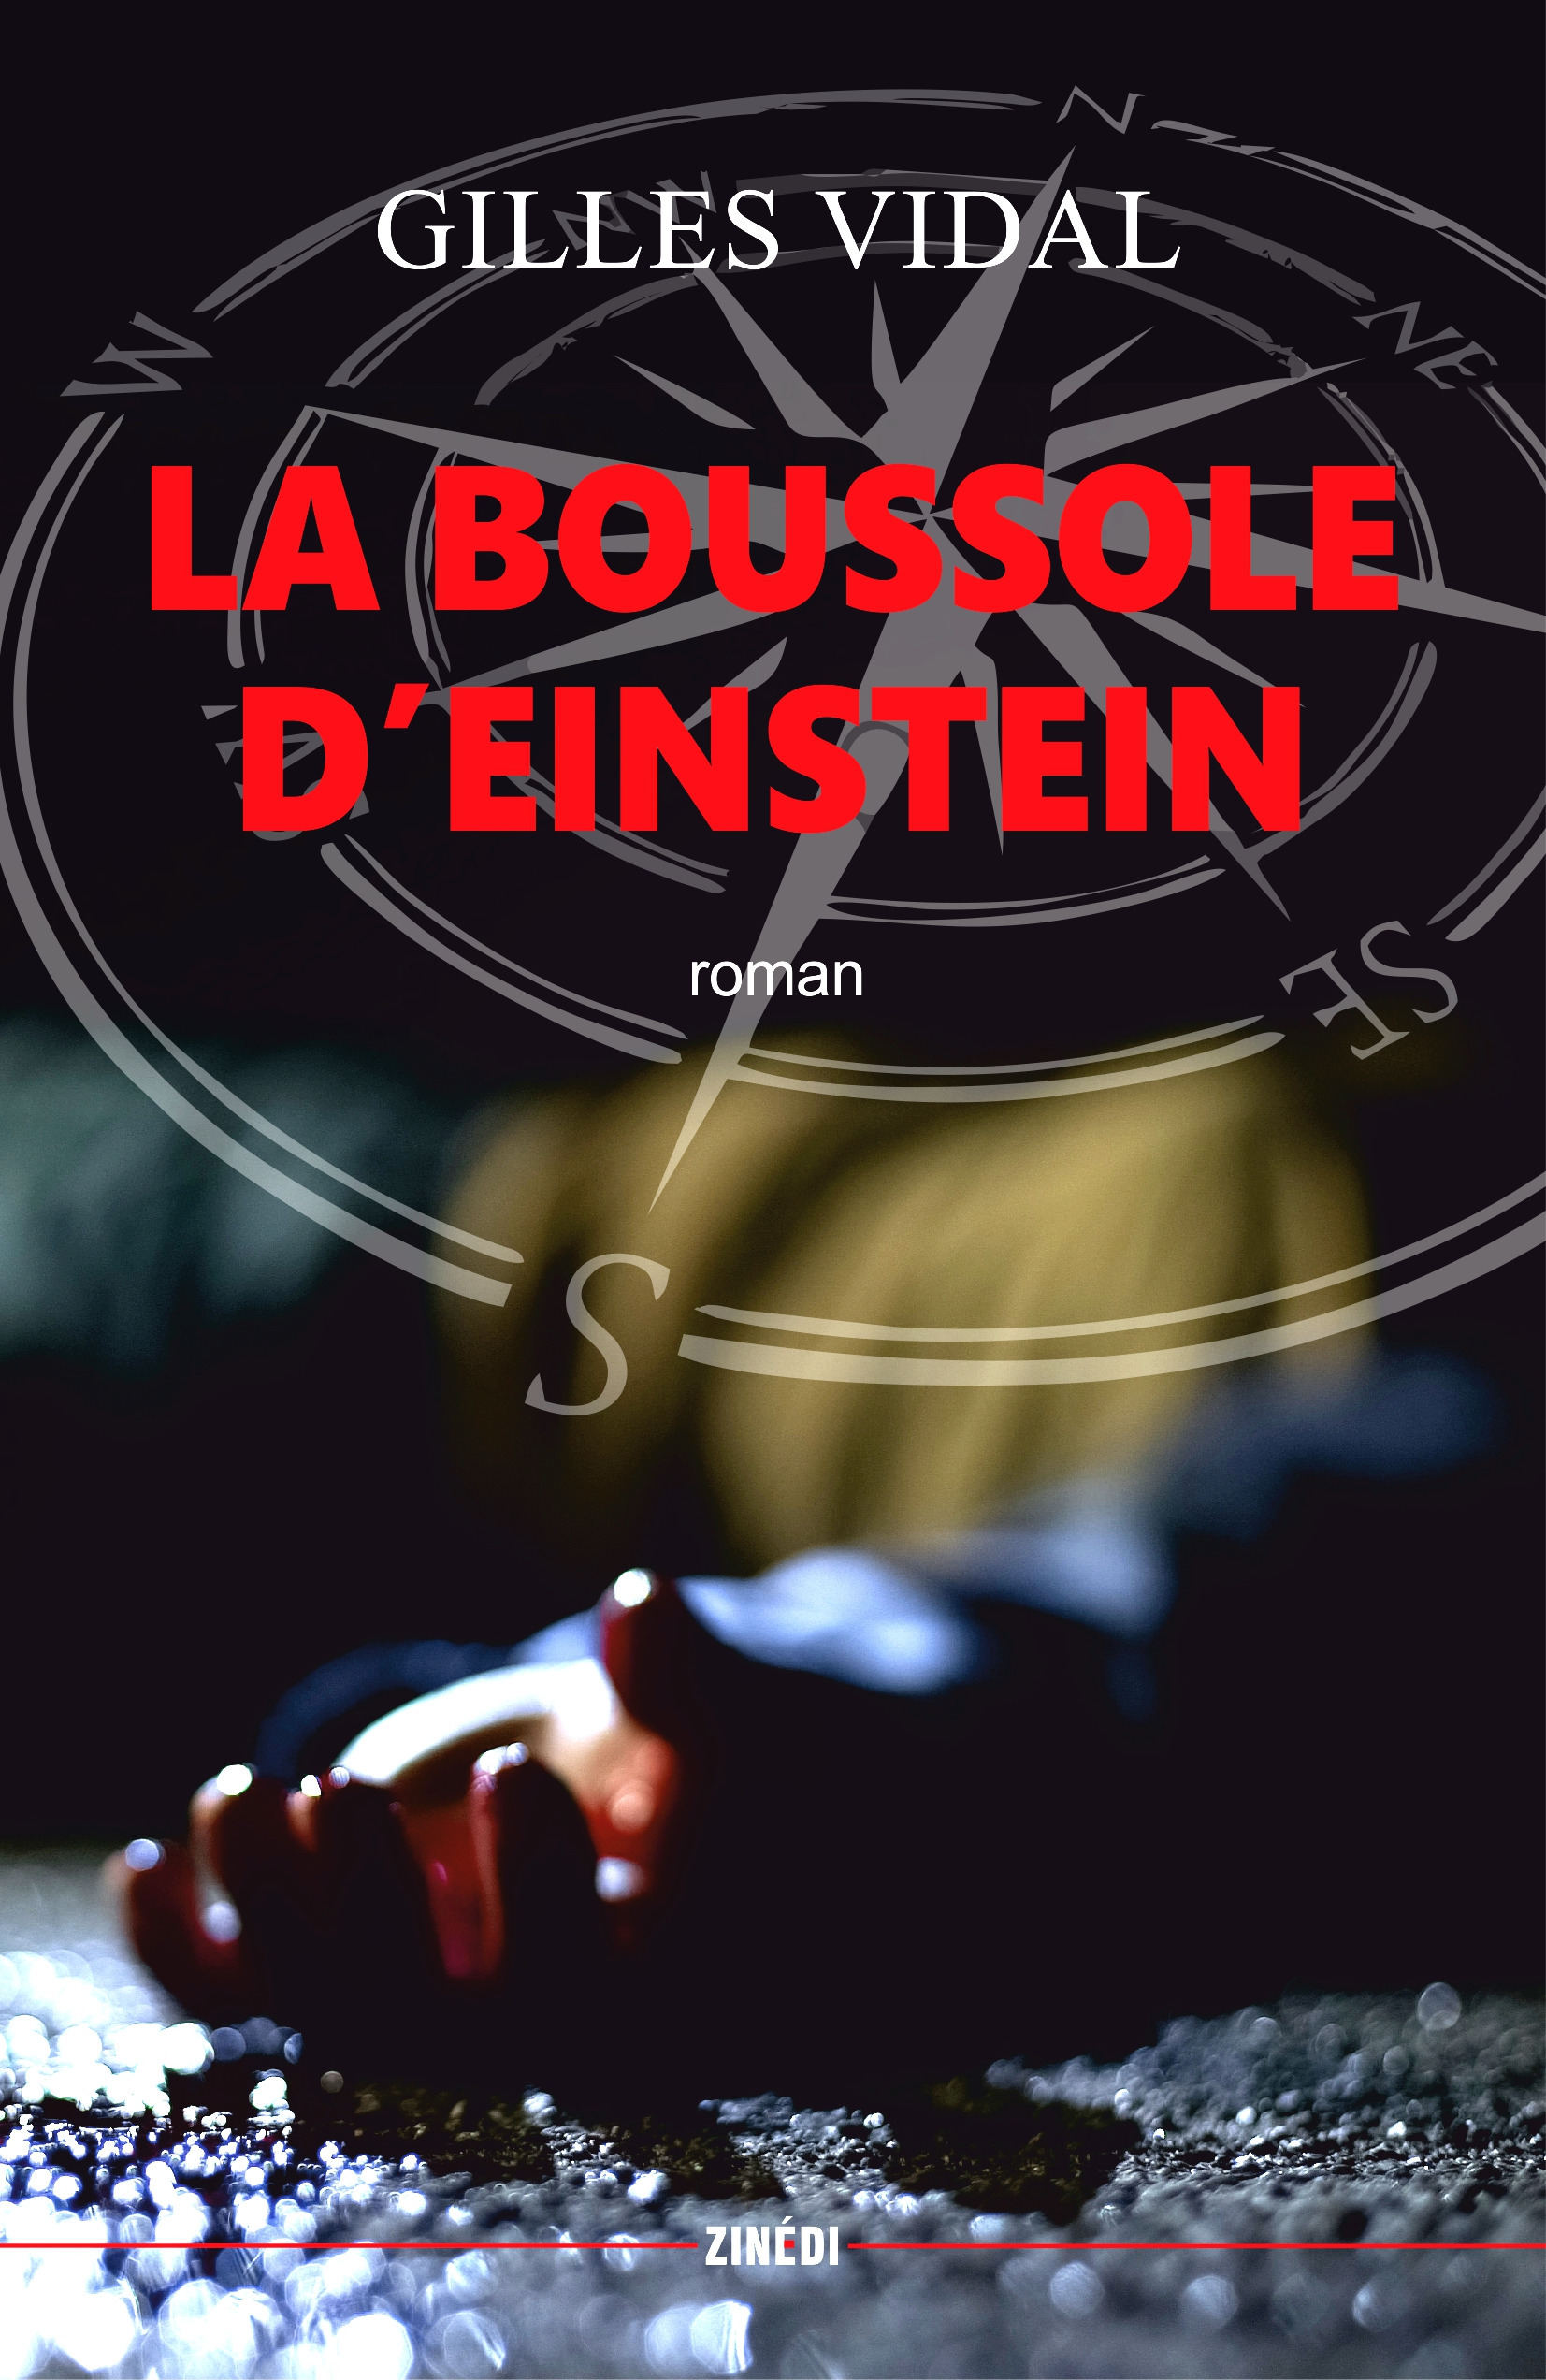 La boussole d'Einstein